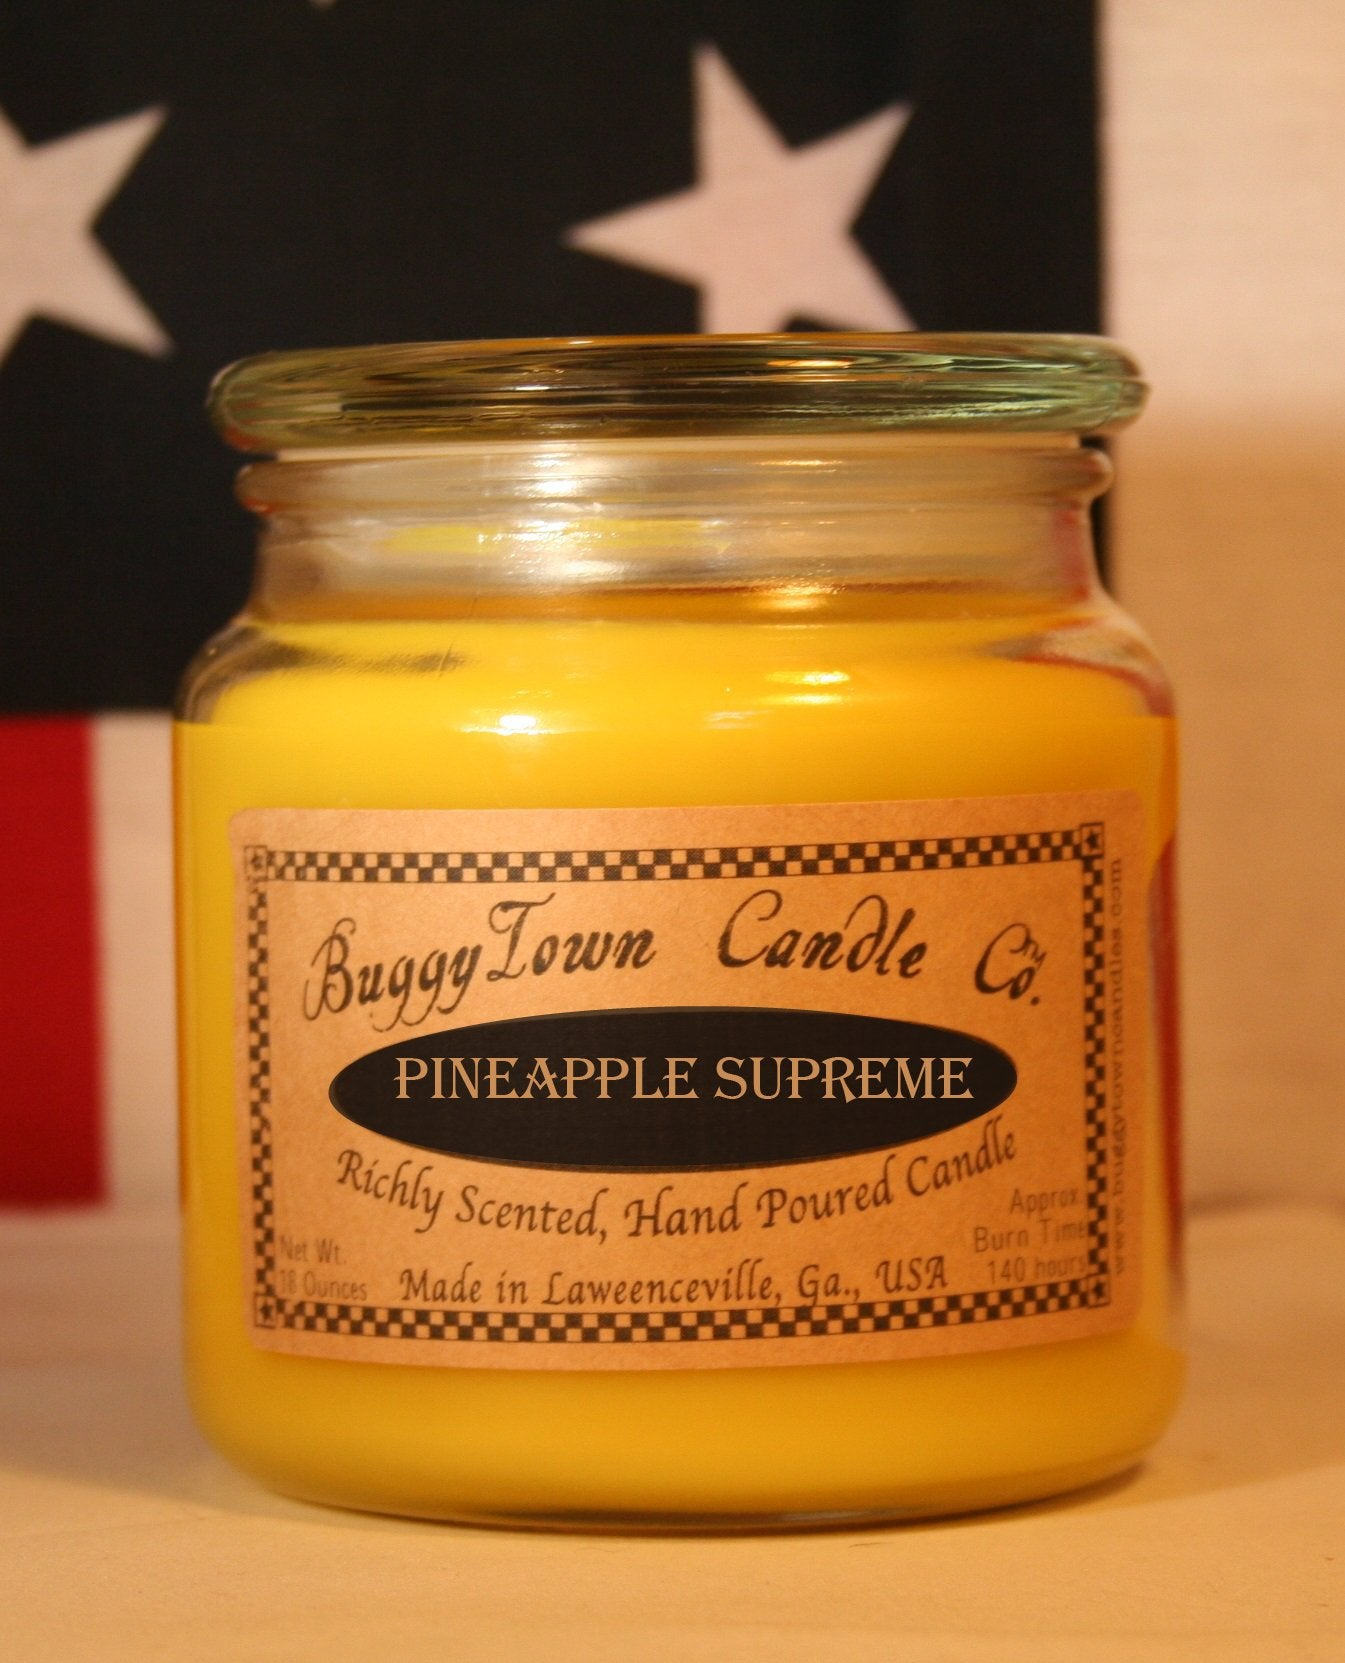 Pineapple Supreme Candles